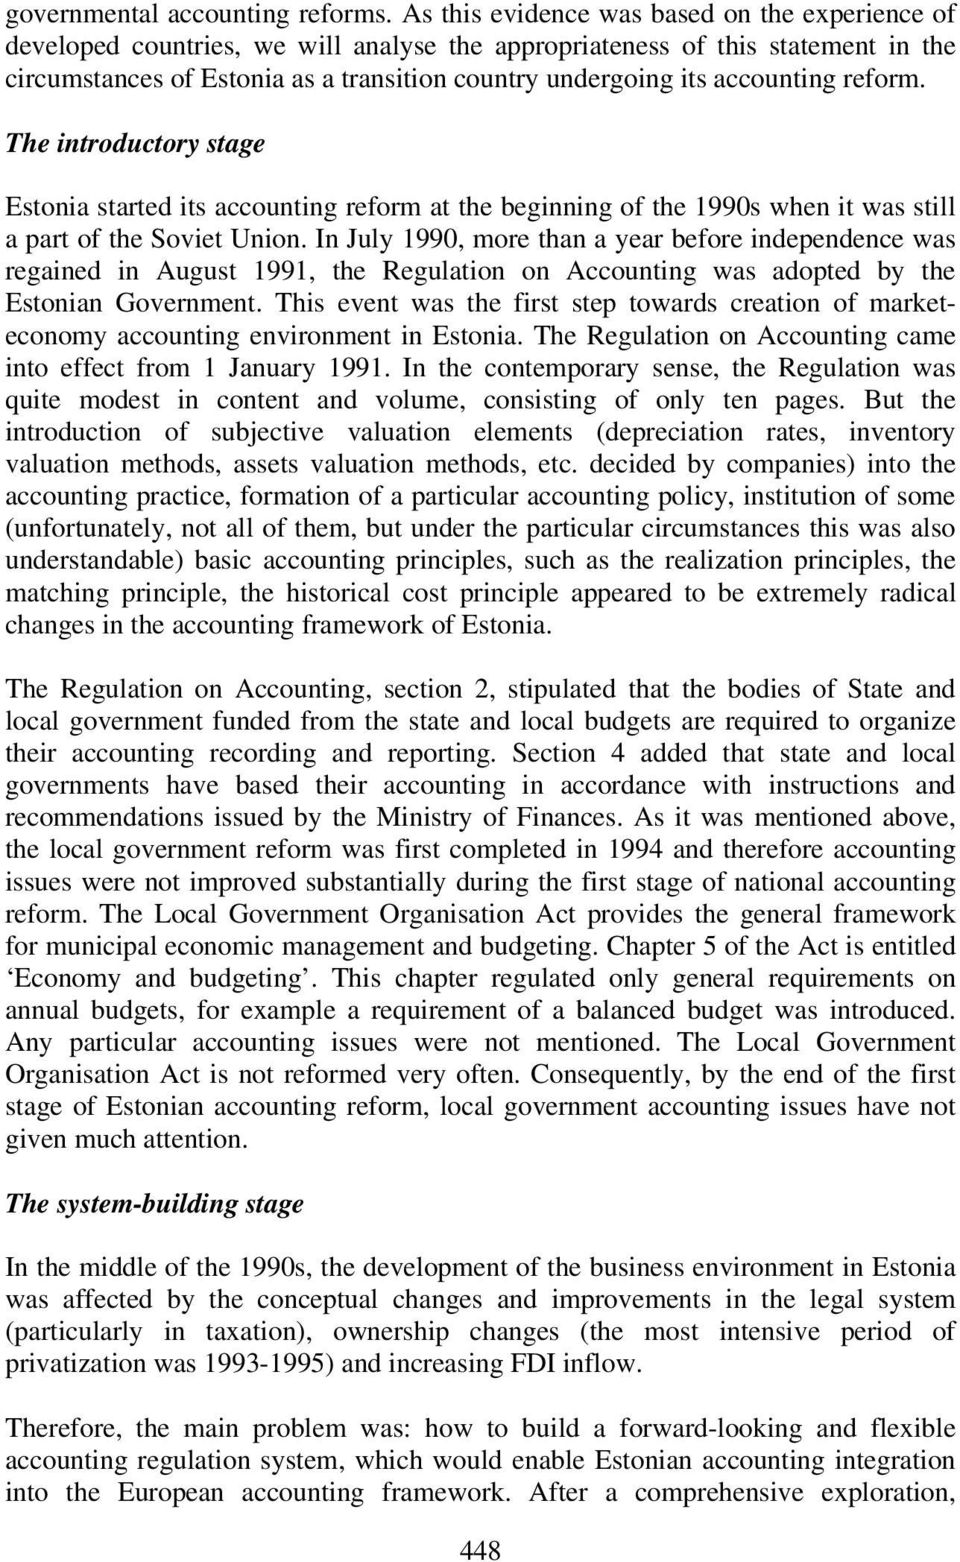 accounting reform. The introductory stage Estonia started its accounting reform at the beginning of the 1990s when it was still a part of the Soviet Union.